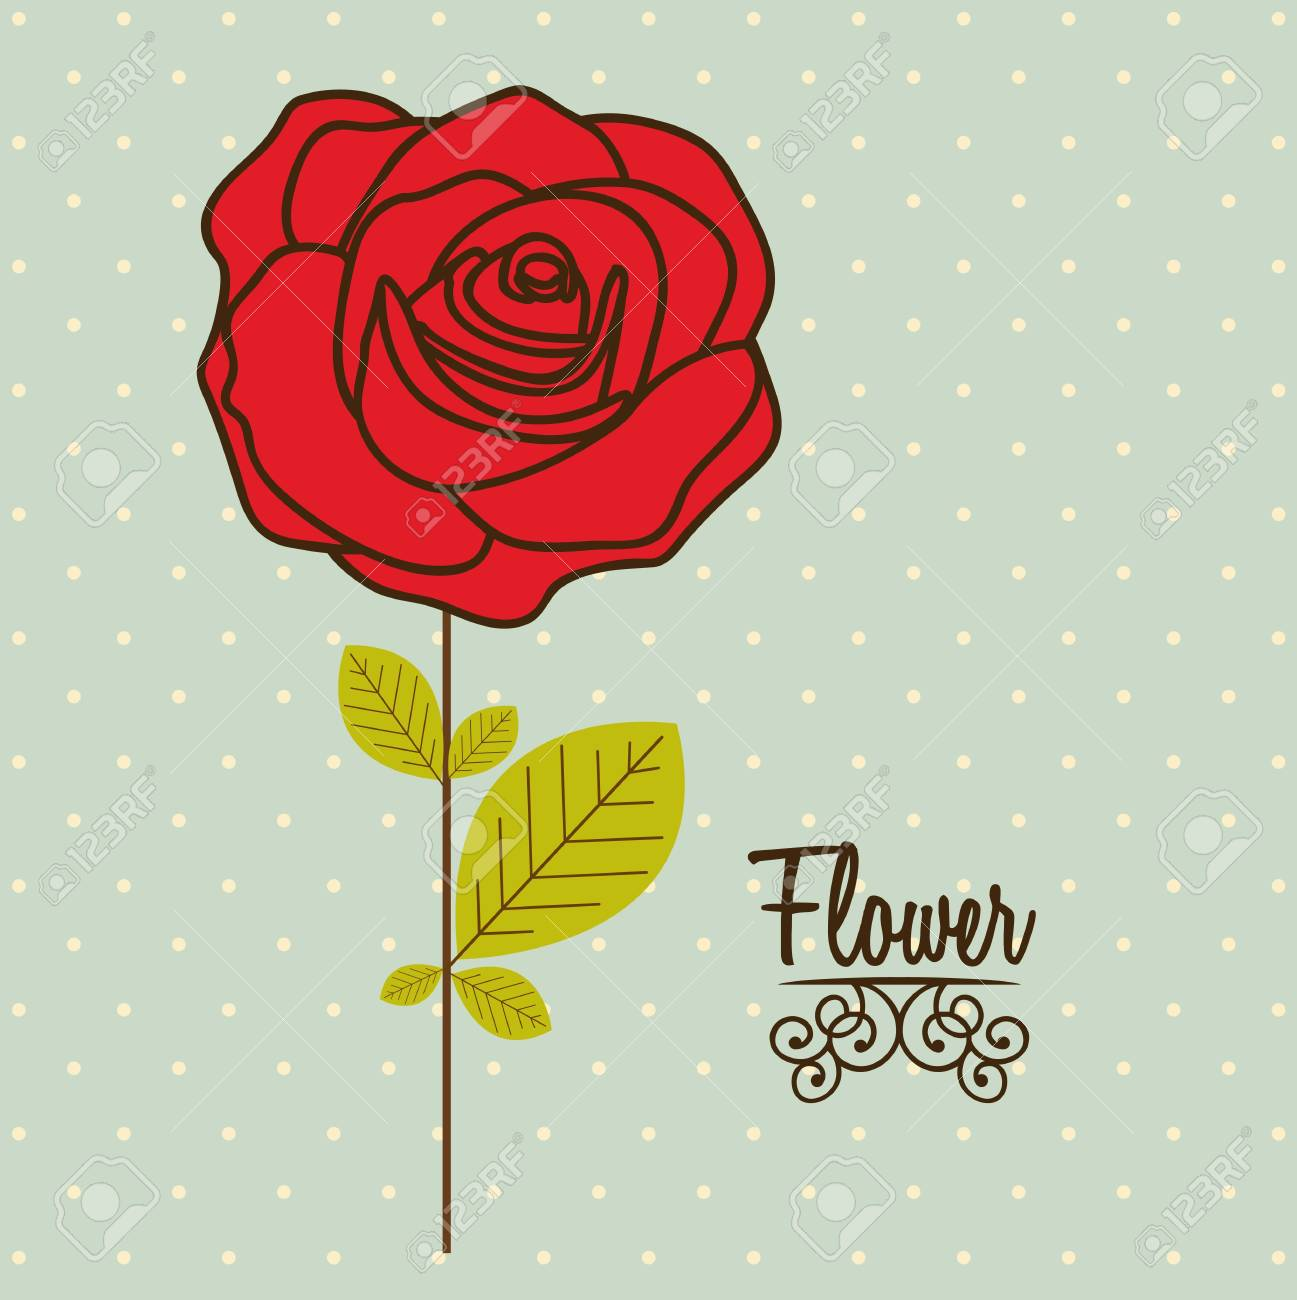 Illustration flowers icons, spring and valentines day, vector illustration Stock Vector - 17002497